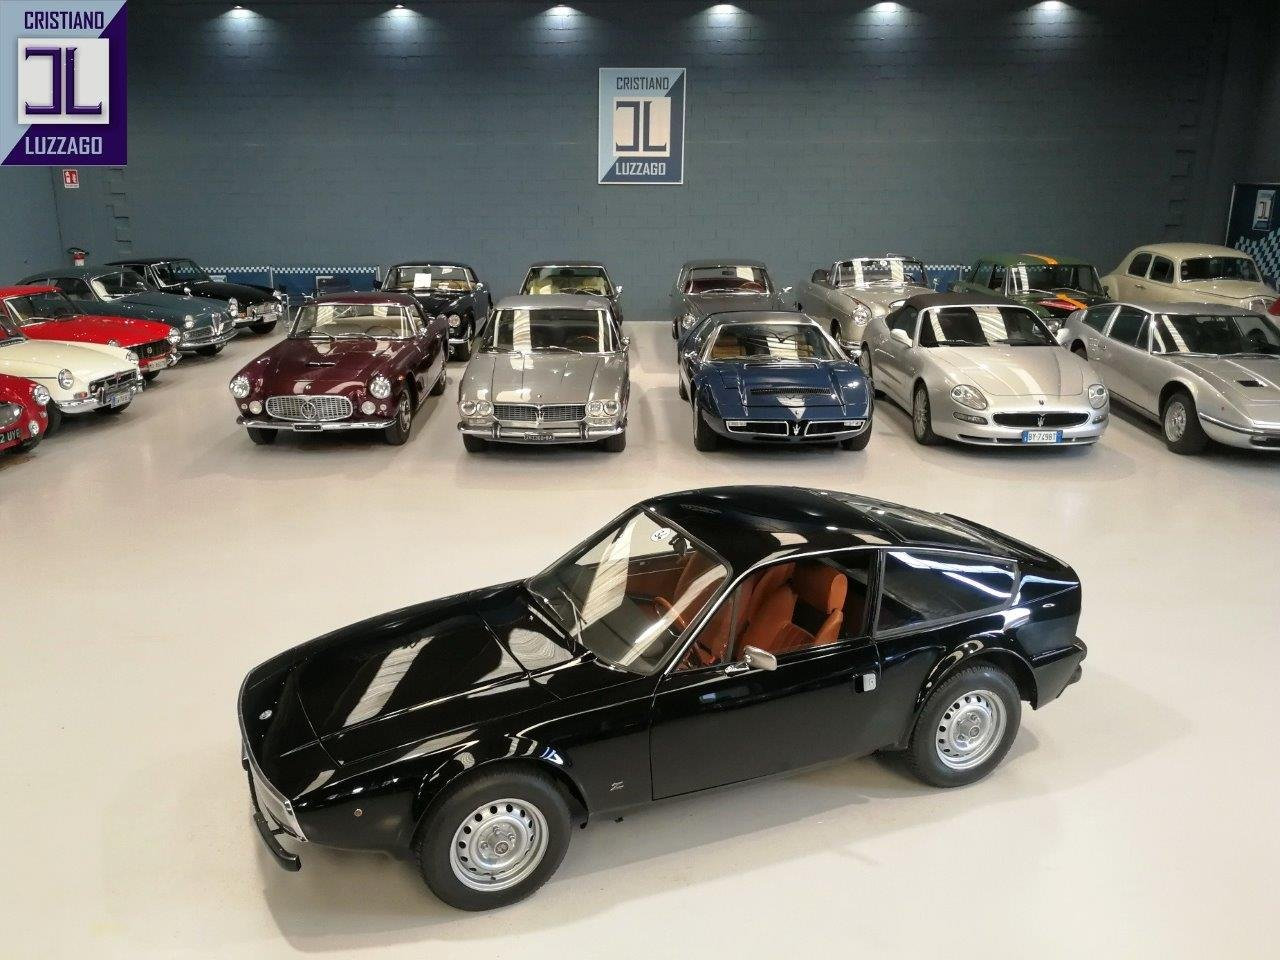 1971 ALFA ROMEO GT JUNIOR ZAGATO 1300 For Sale (picture 1 of 6)